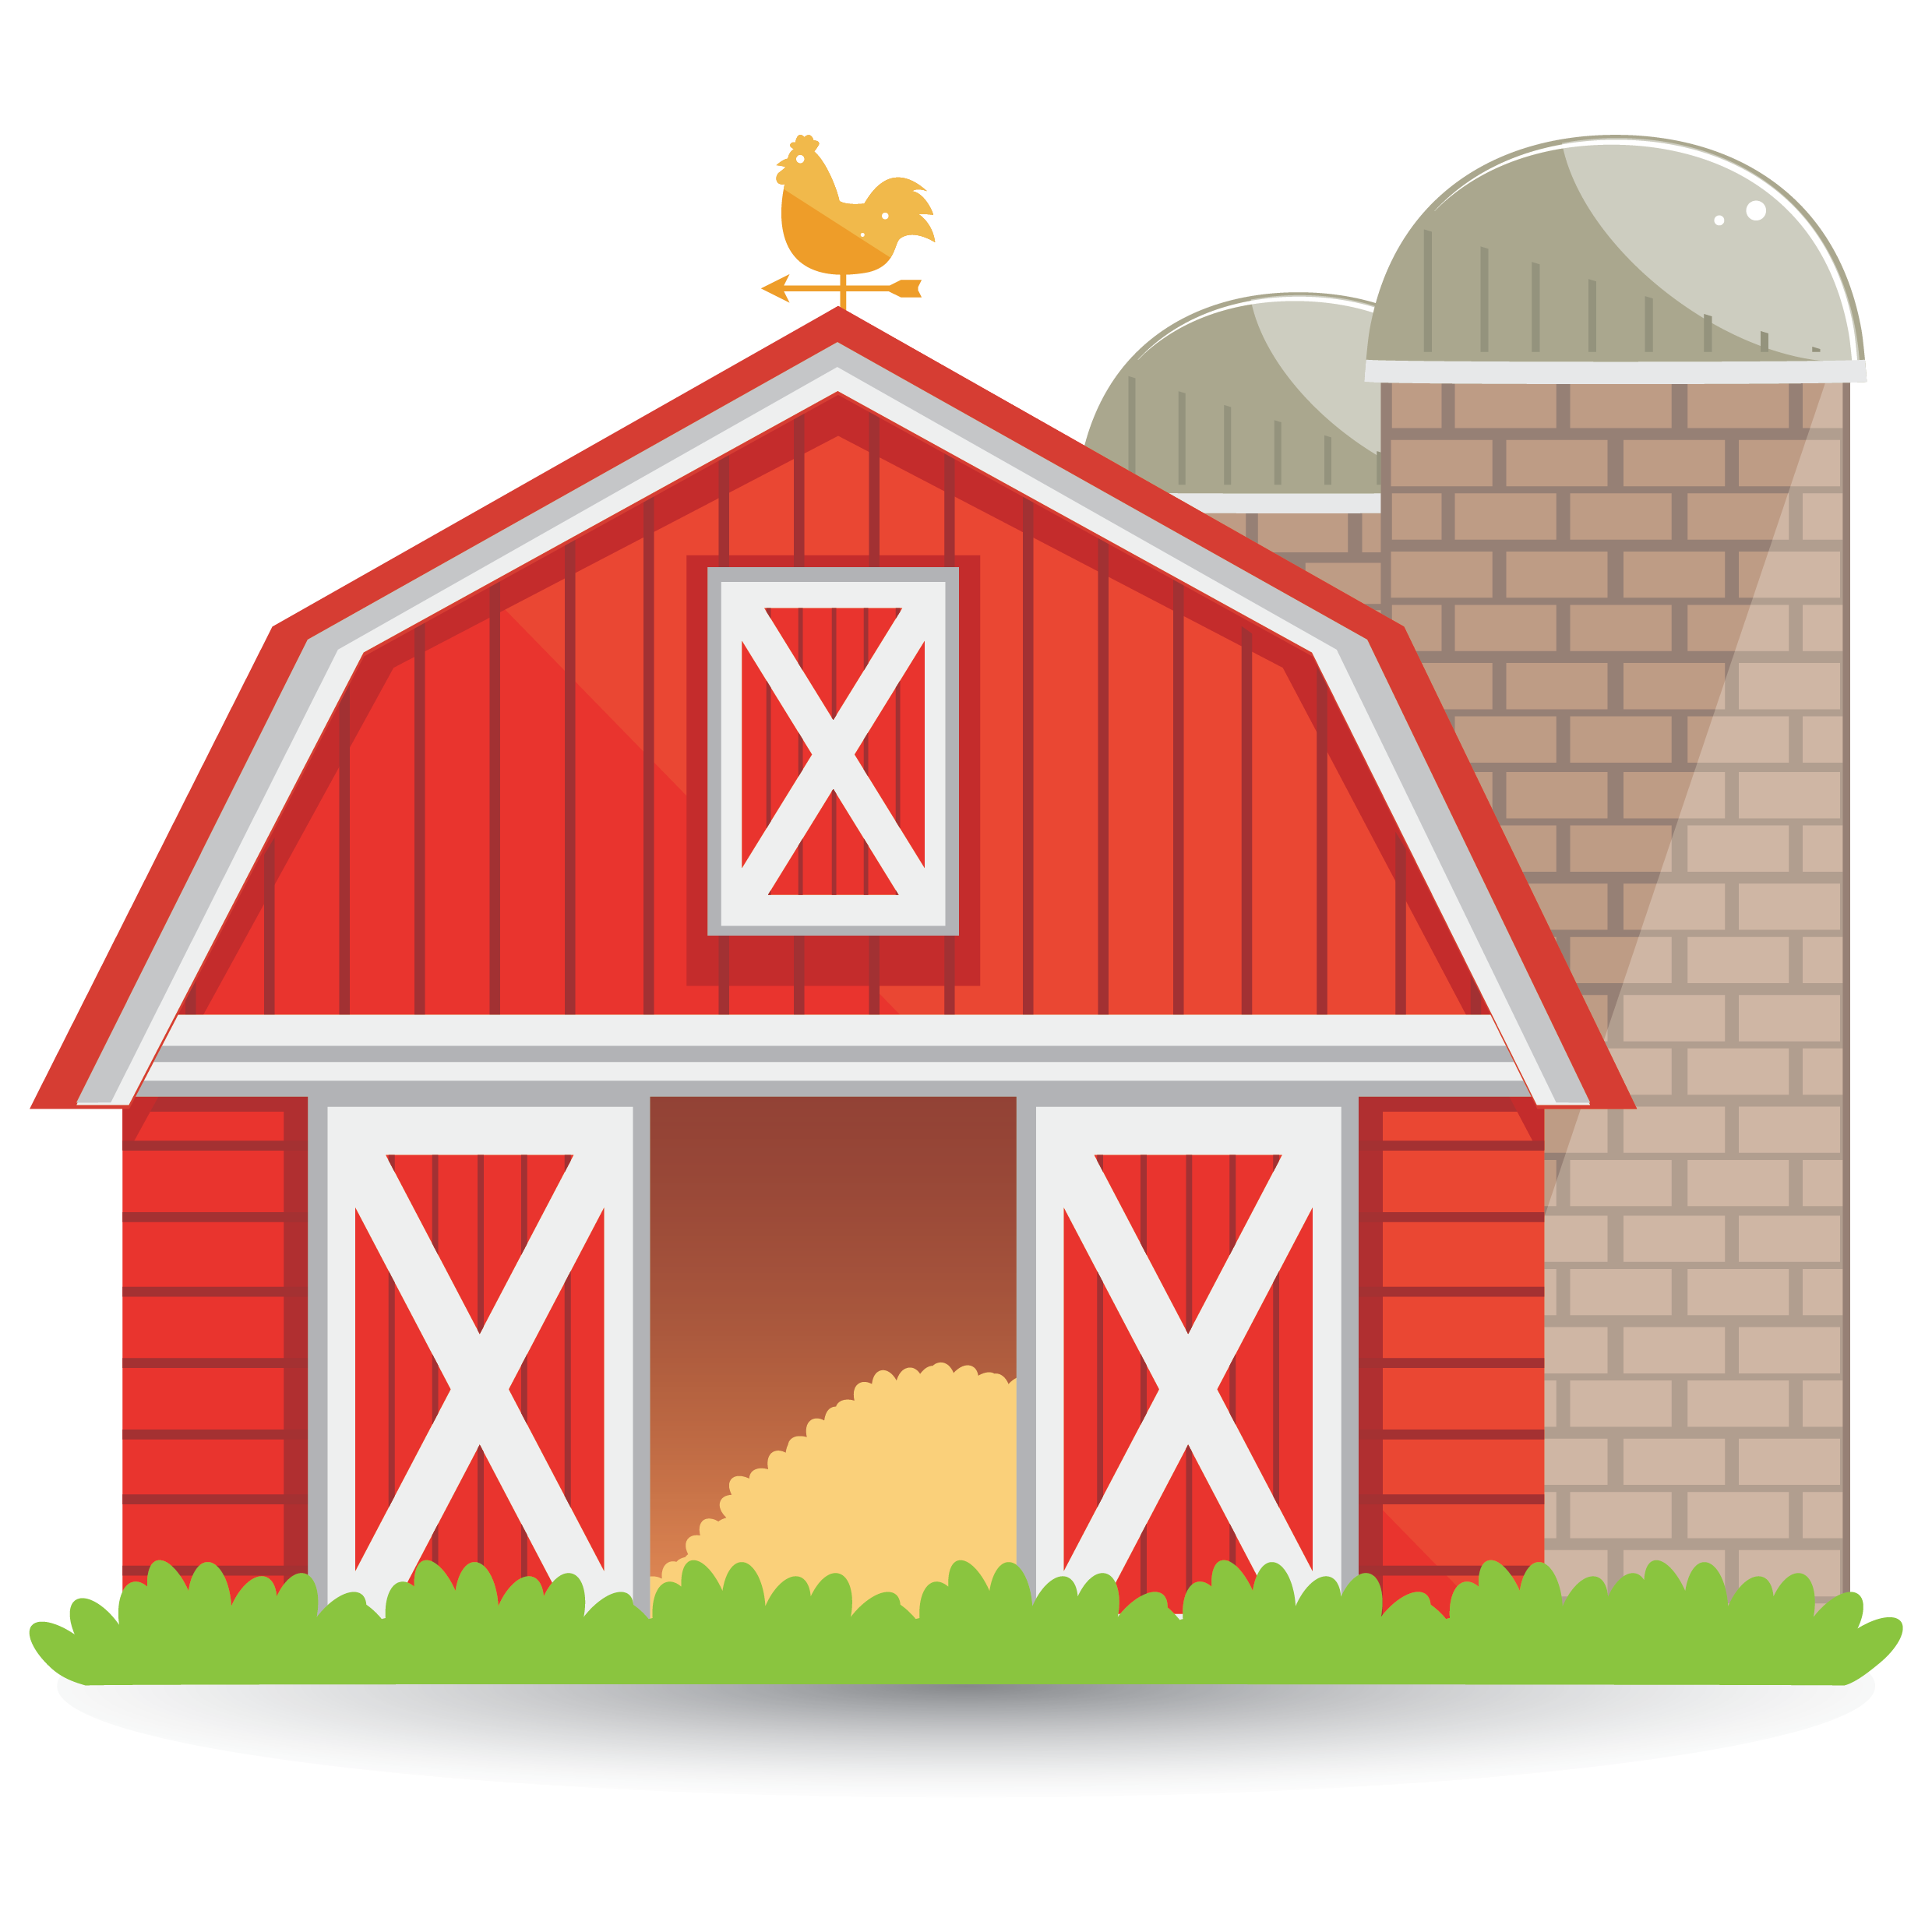 Barn transparent. Farming png royalty